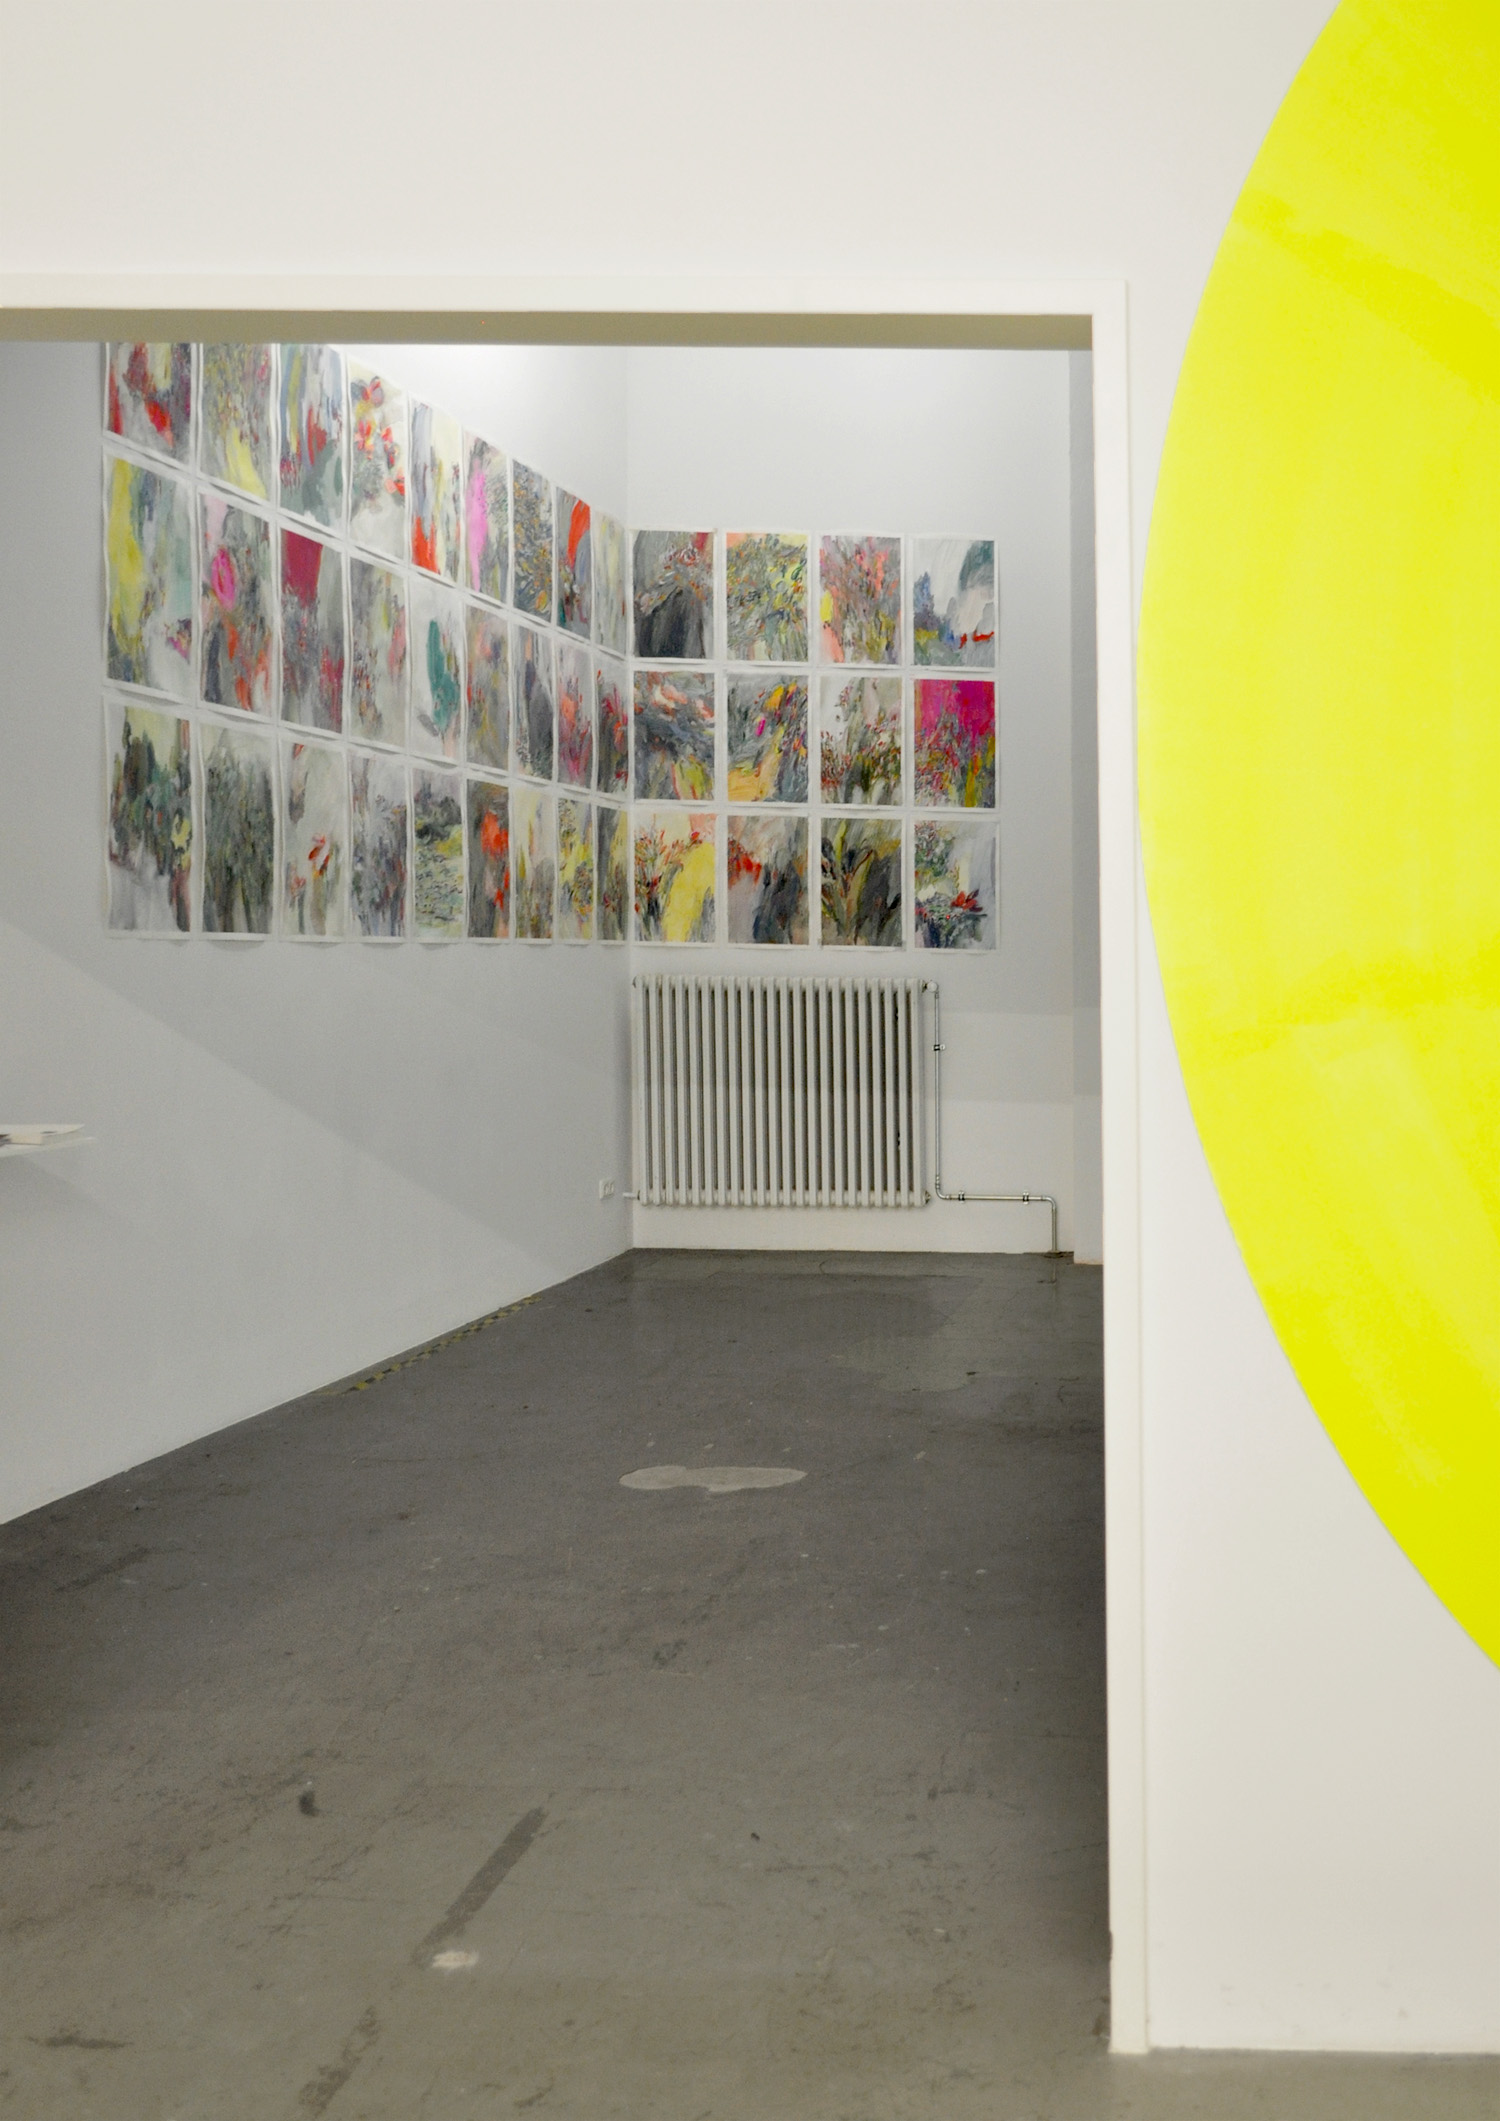 installation view, Studio Jeppe Hein, Berlin, 2013  (yellow circle by Jeppe Hein Studio)